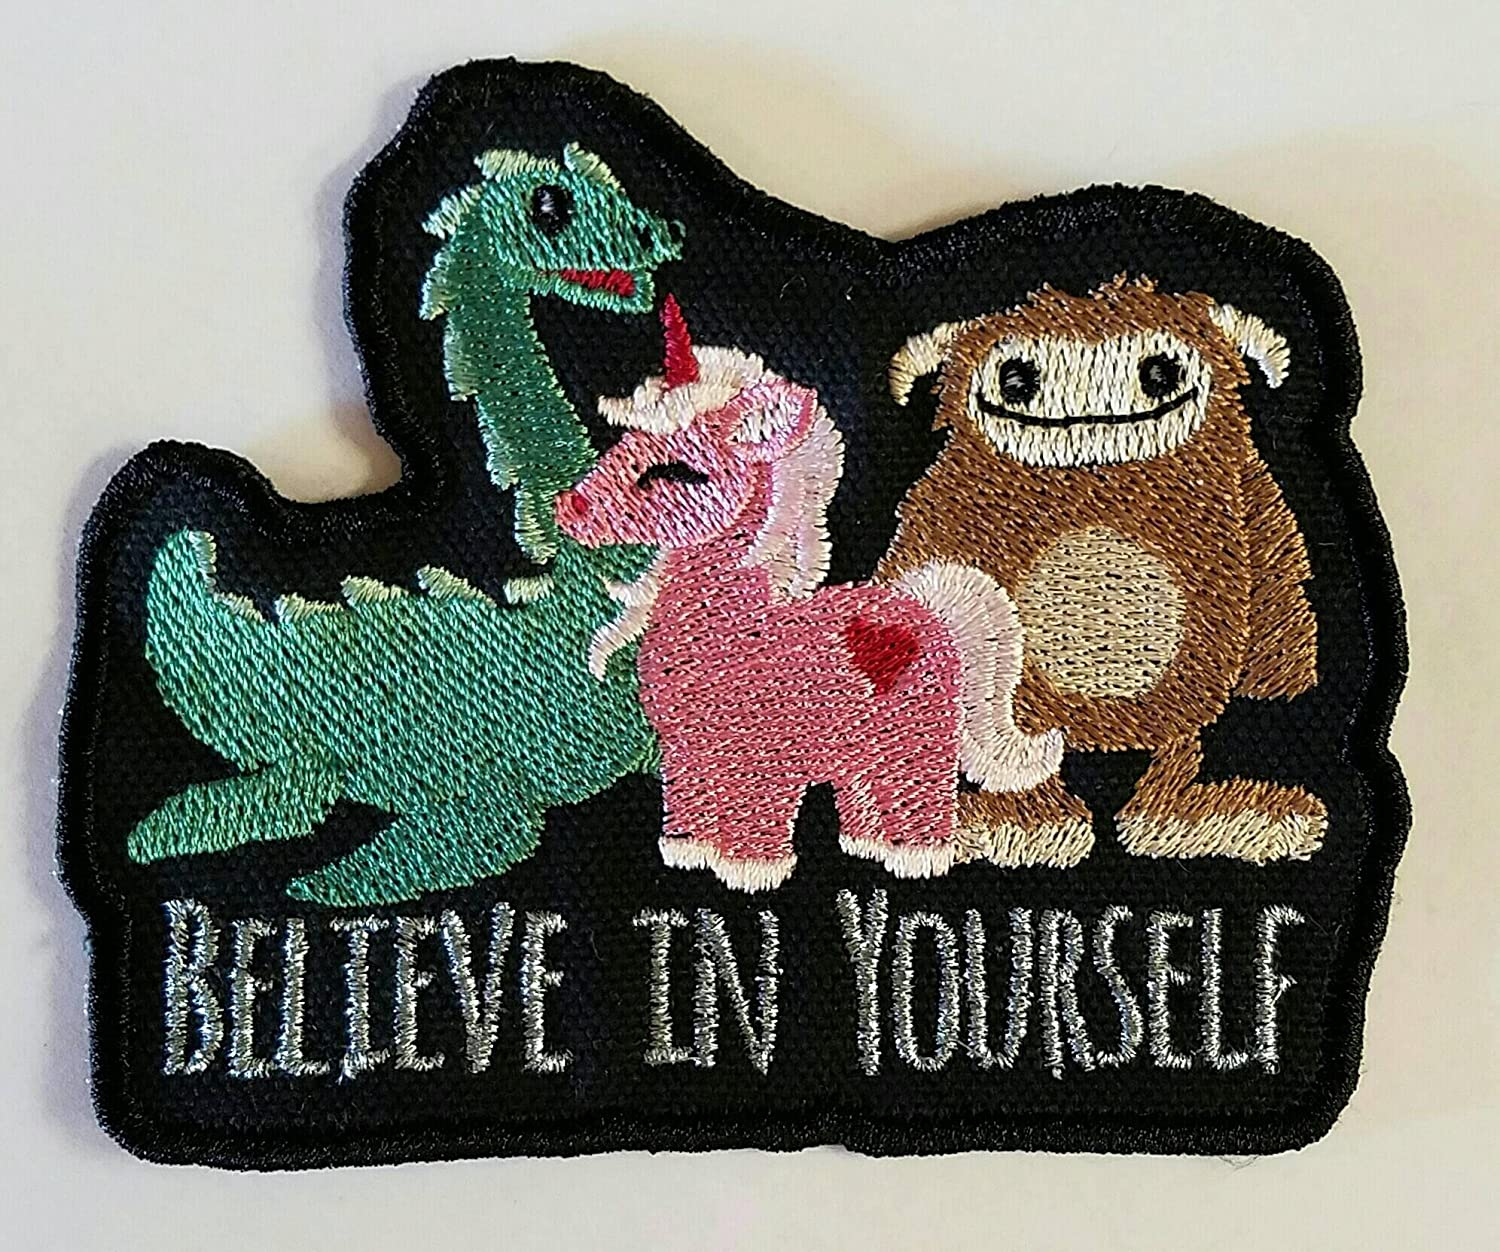 Believe Cryptic Creature Sew on Patch